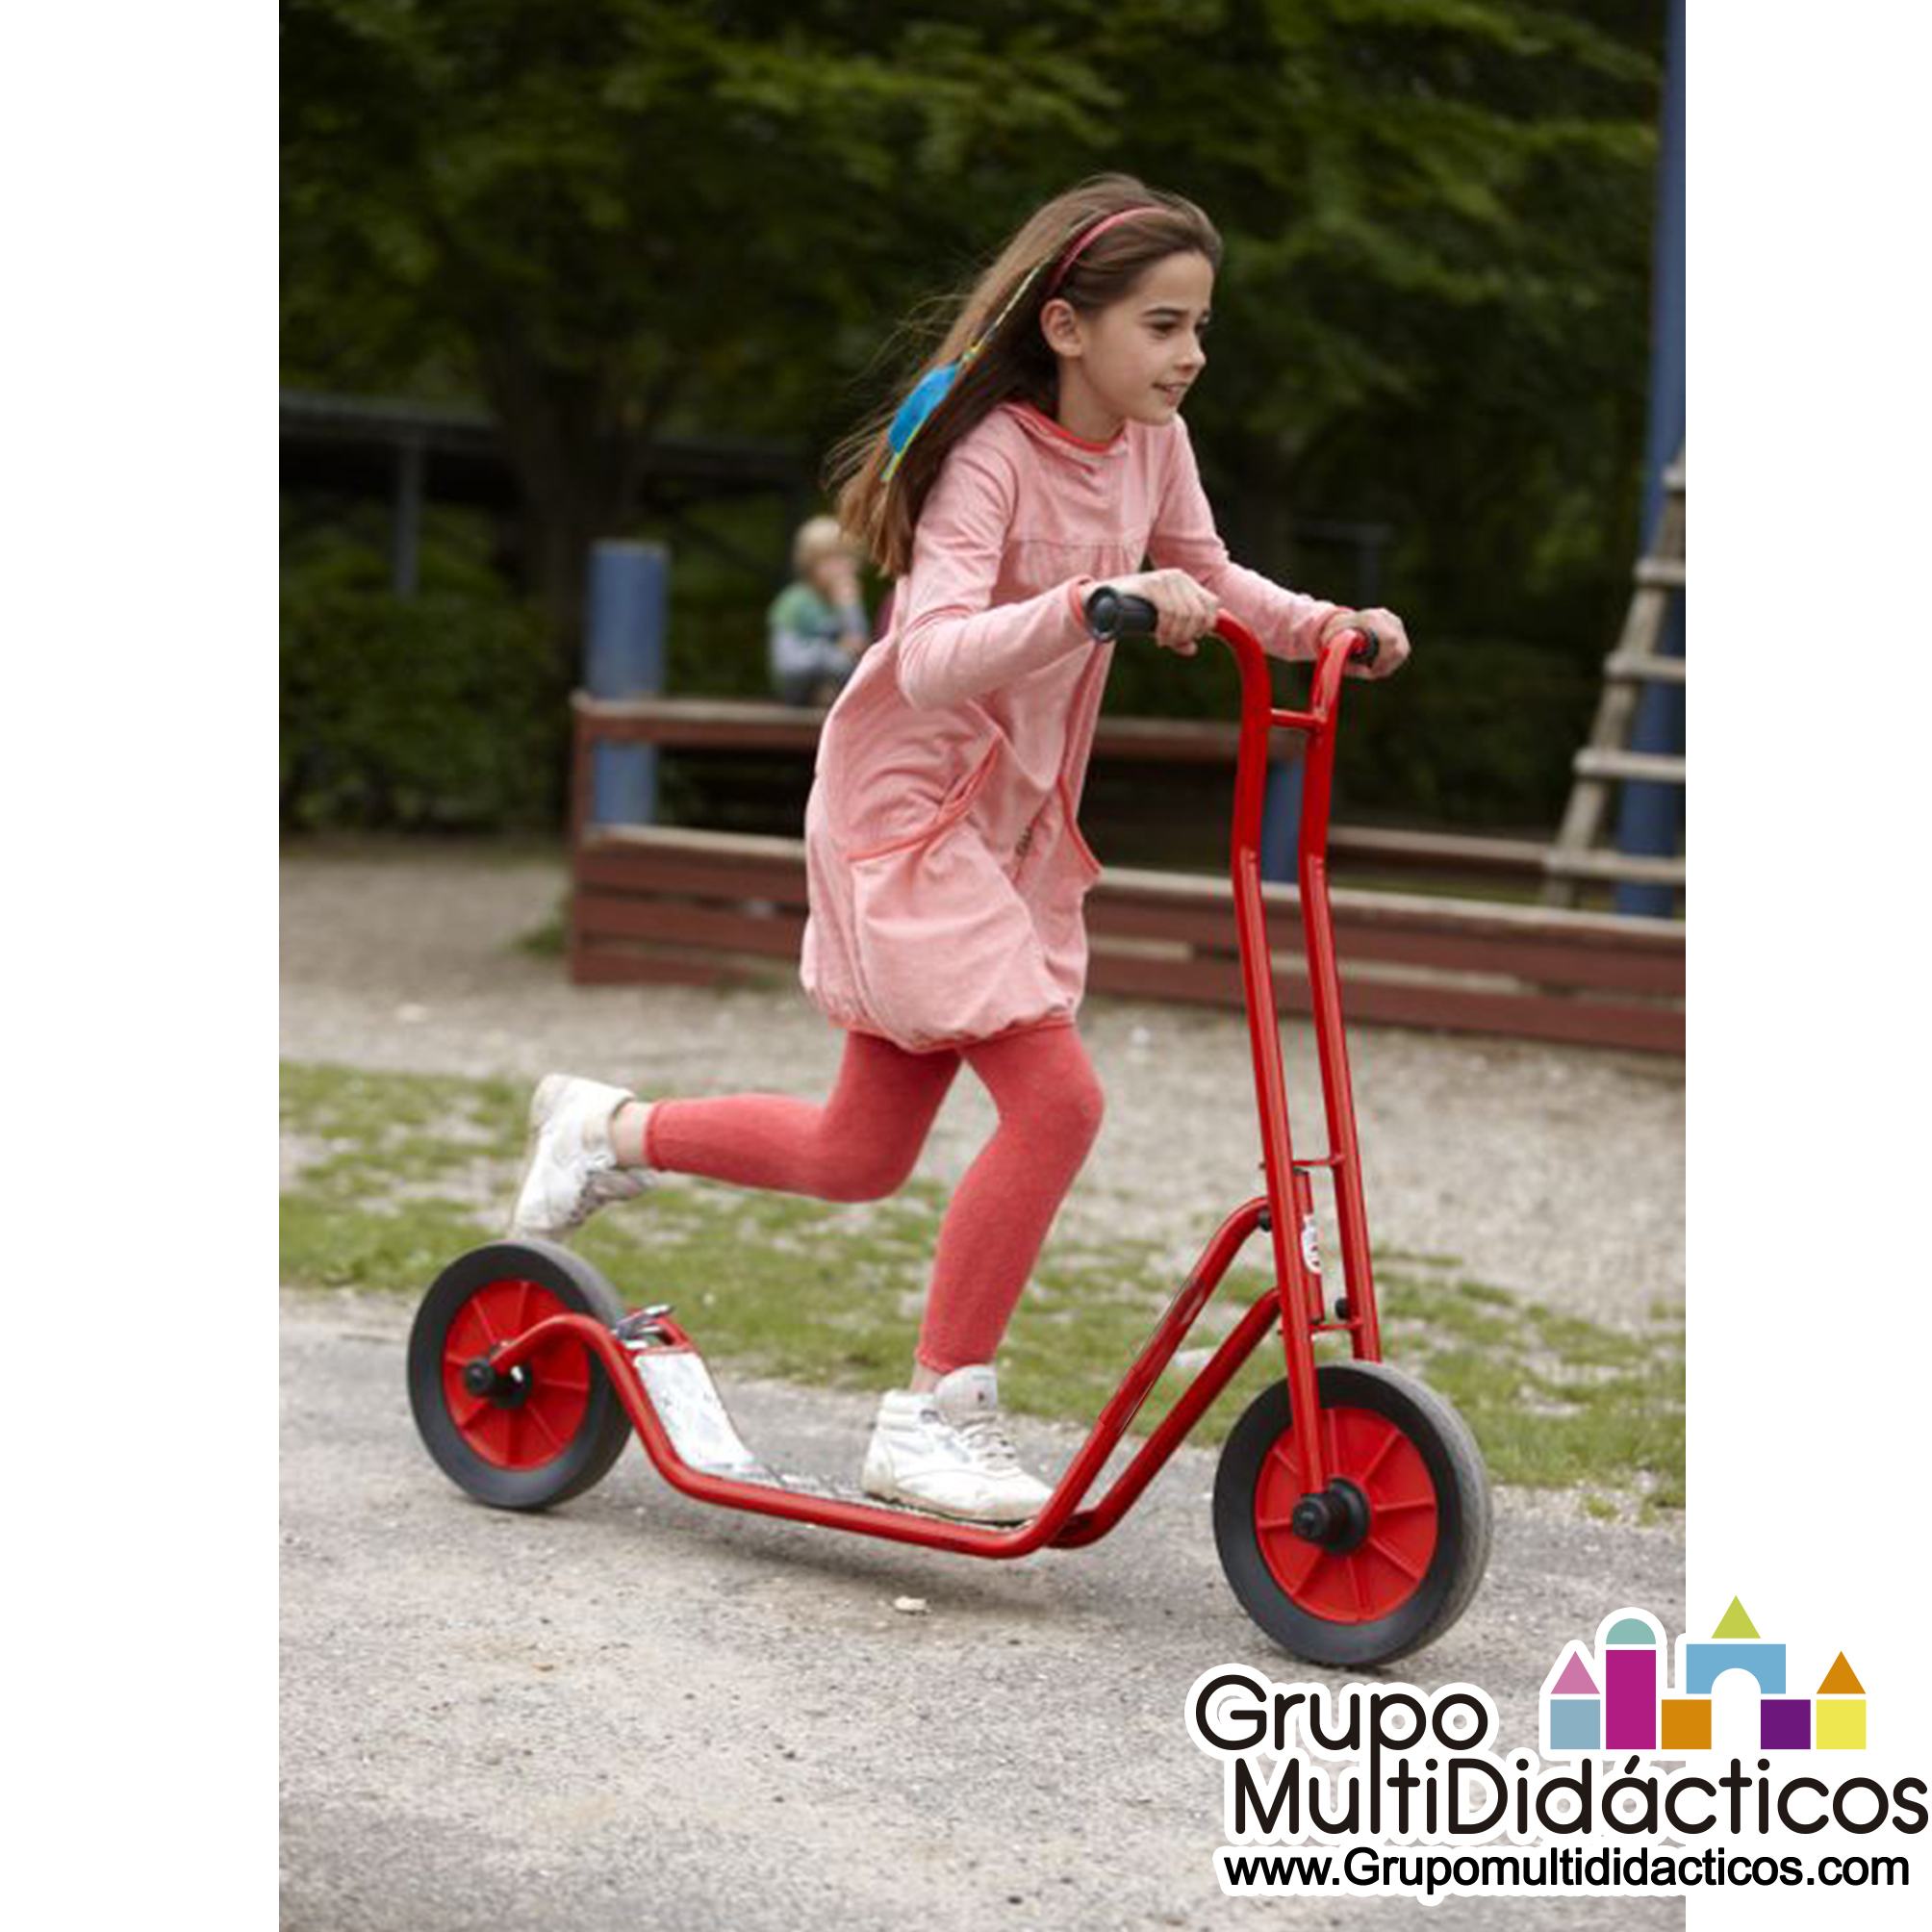 https://multididacticos.com/images/productos/peq/patinete%206b.jpg